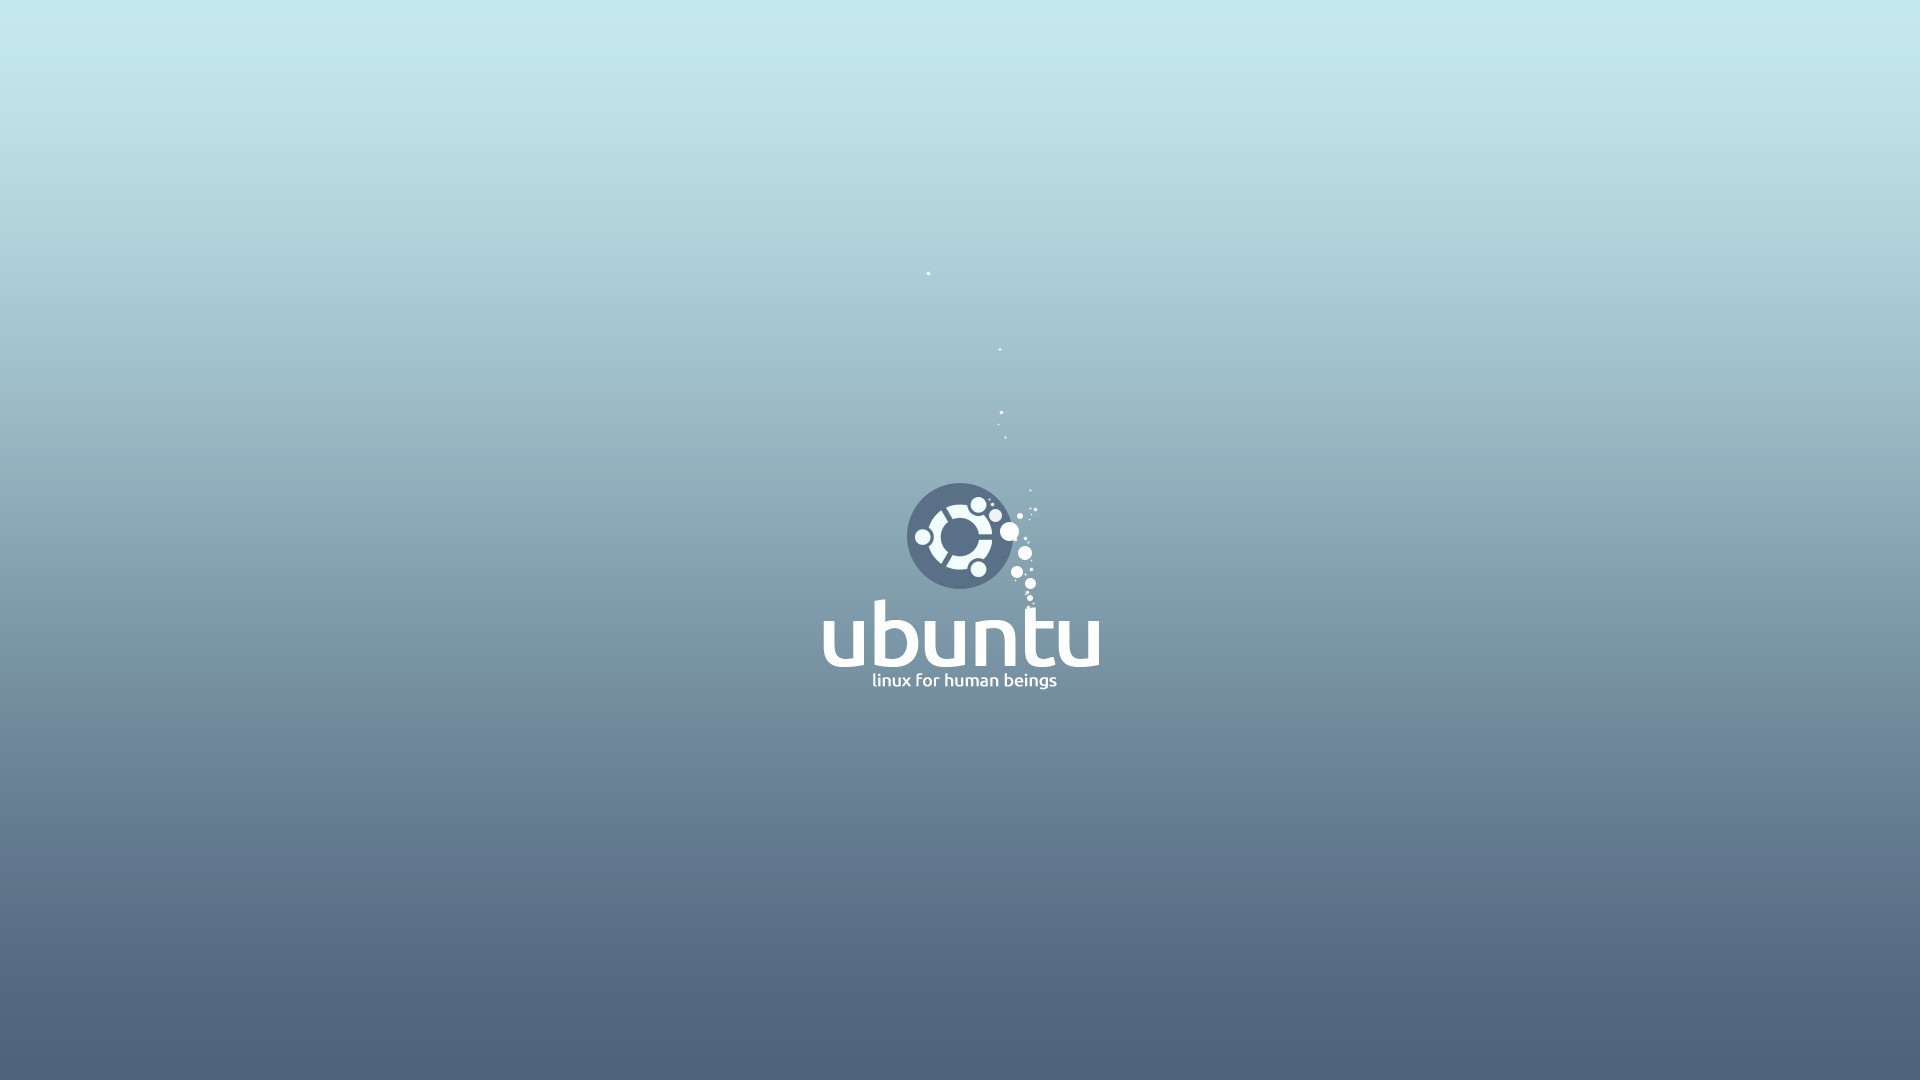 Ubuntu wallpaper 15222 1920x1080